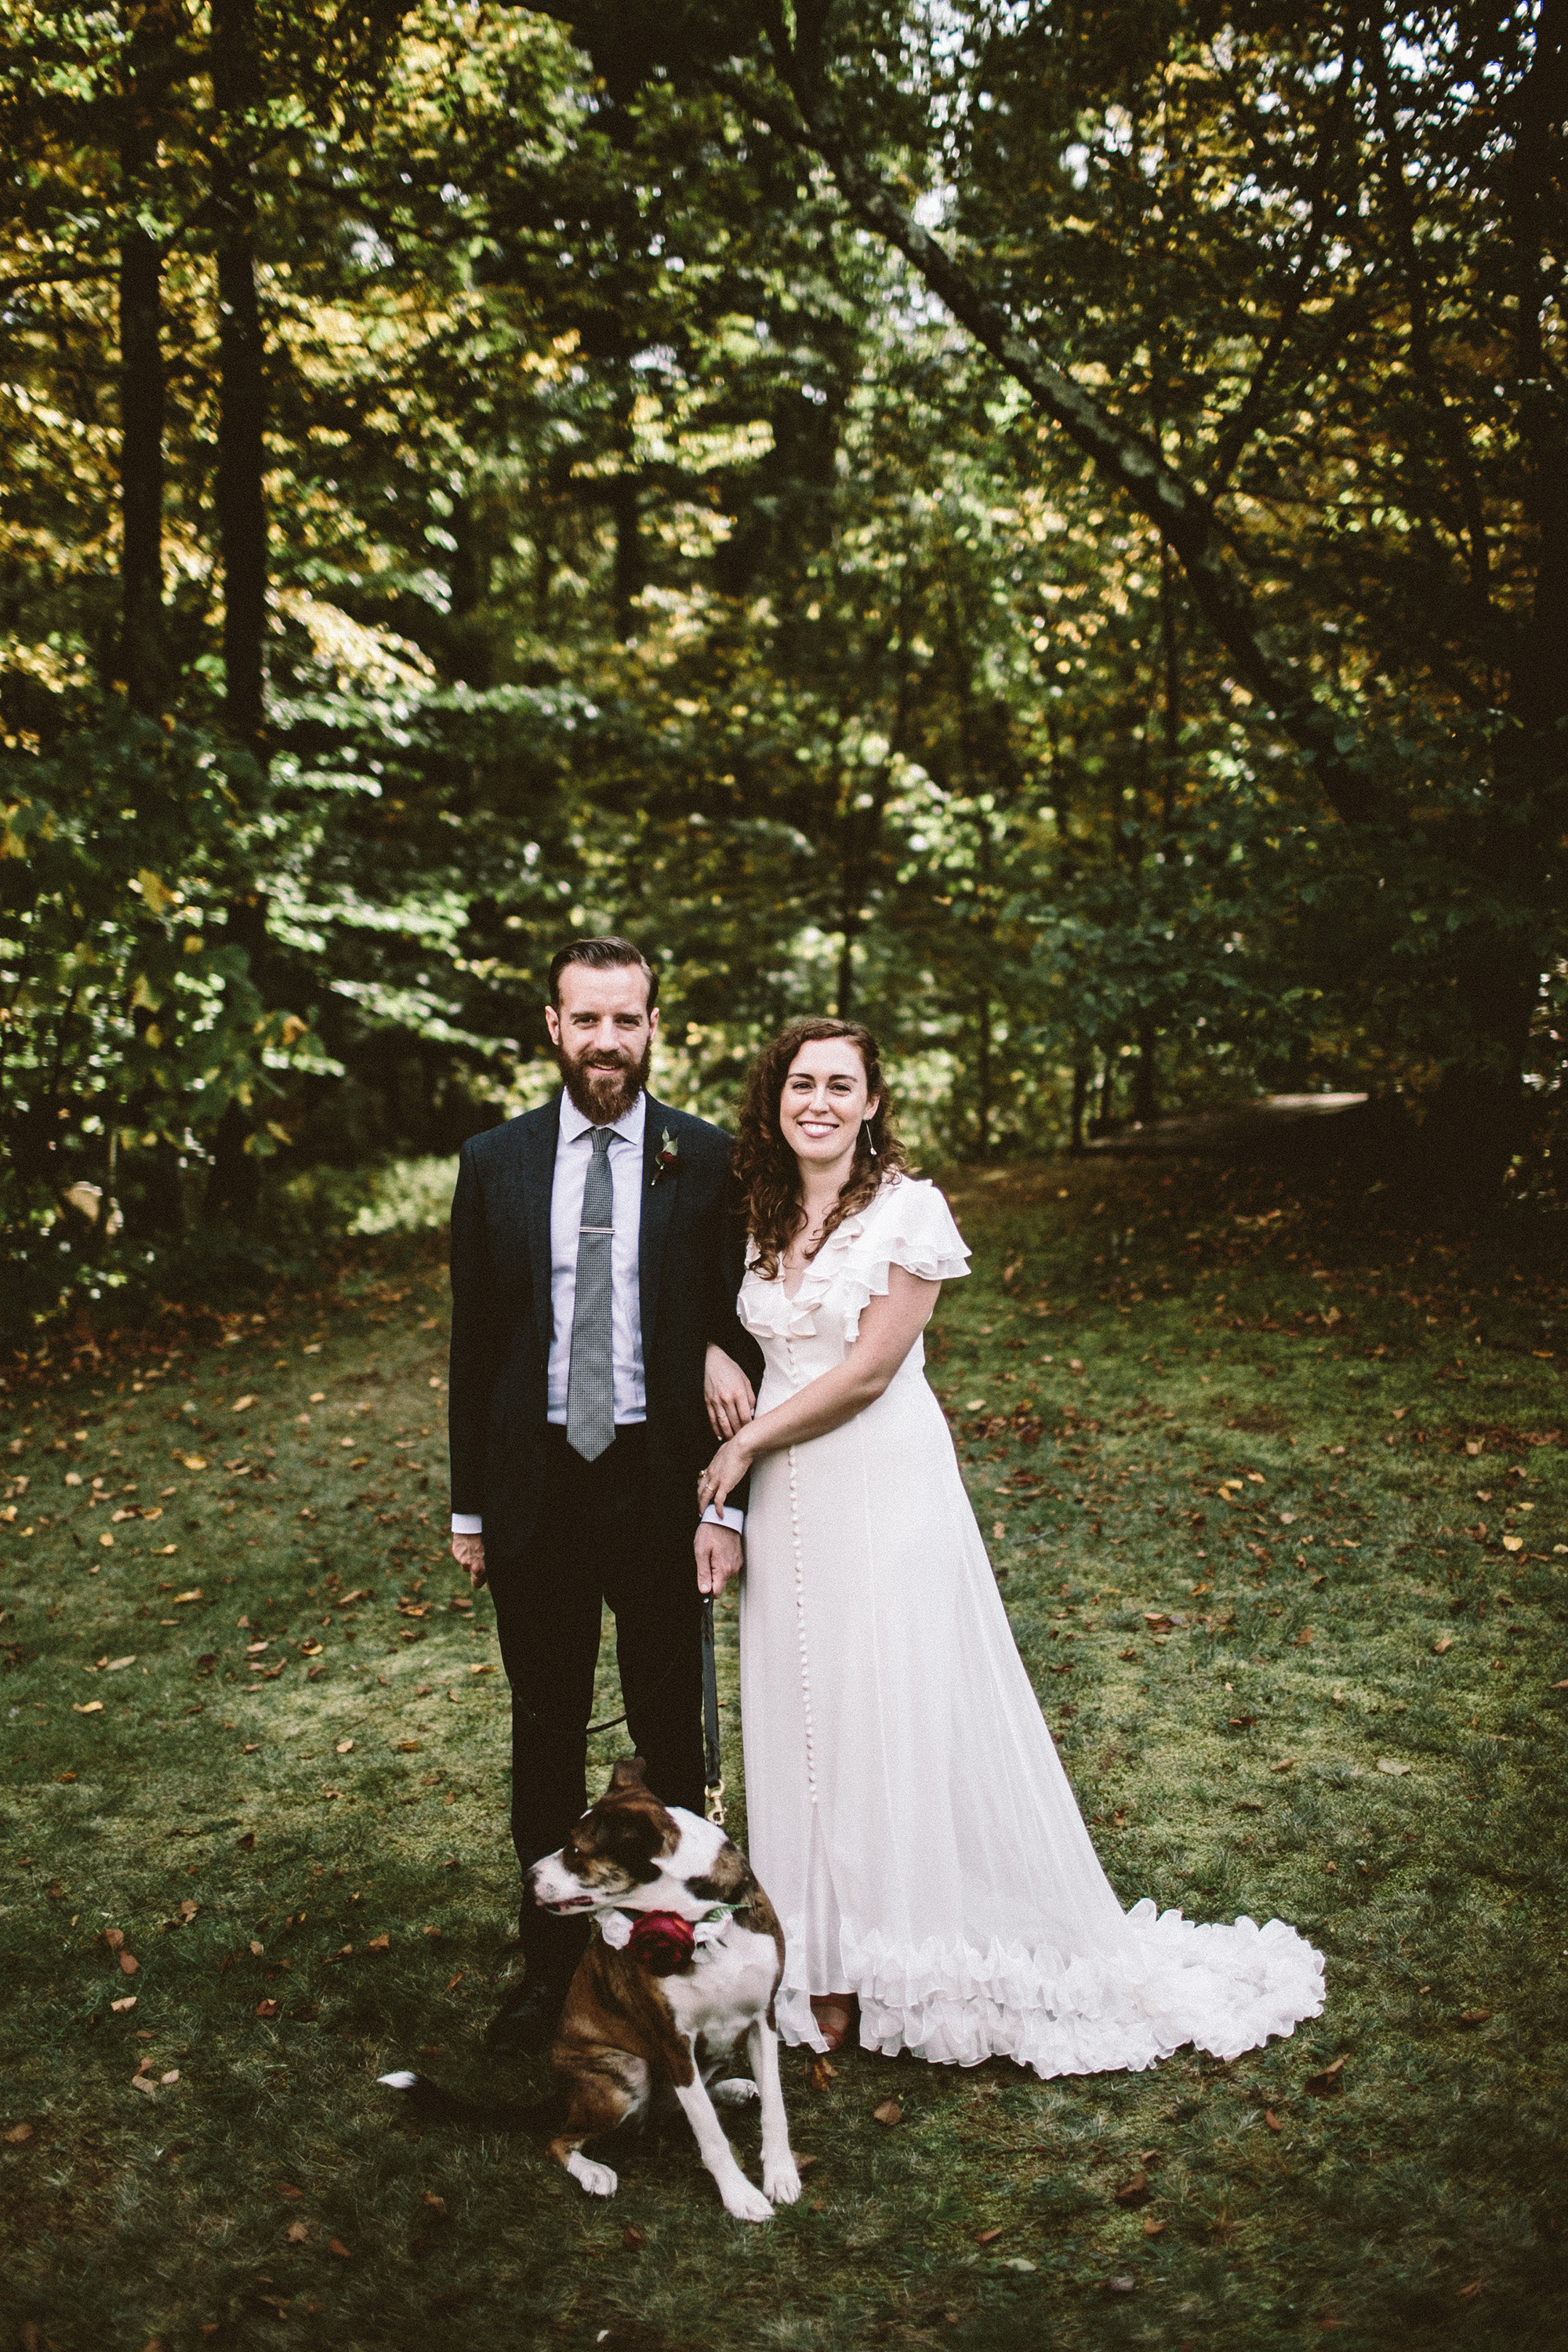 One Couple's DIY Fall Wedding in Upstate New York